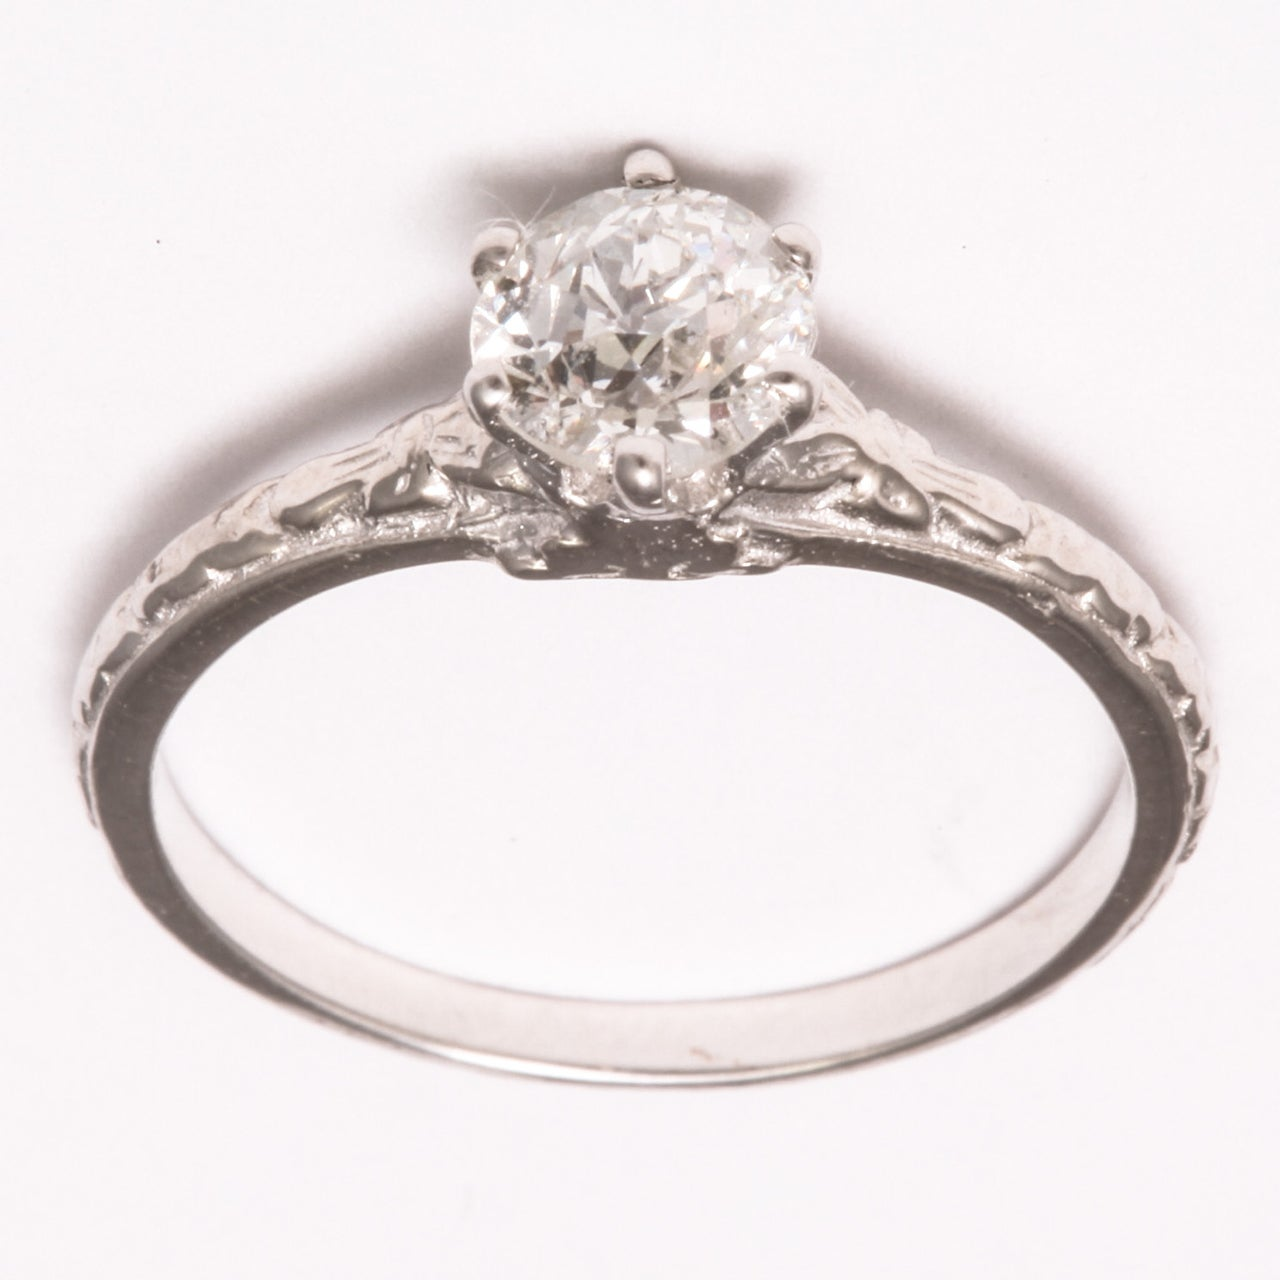 j rings jewelry and l marquise id diamond at style platinum co carat engagement edwardian of ring tiffany